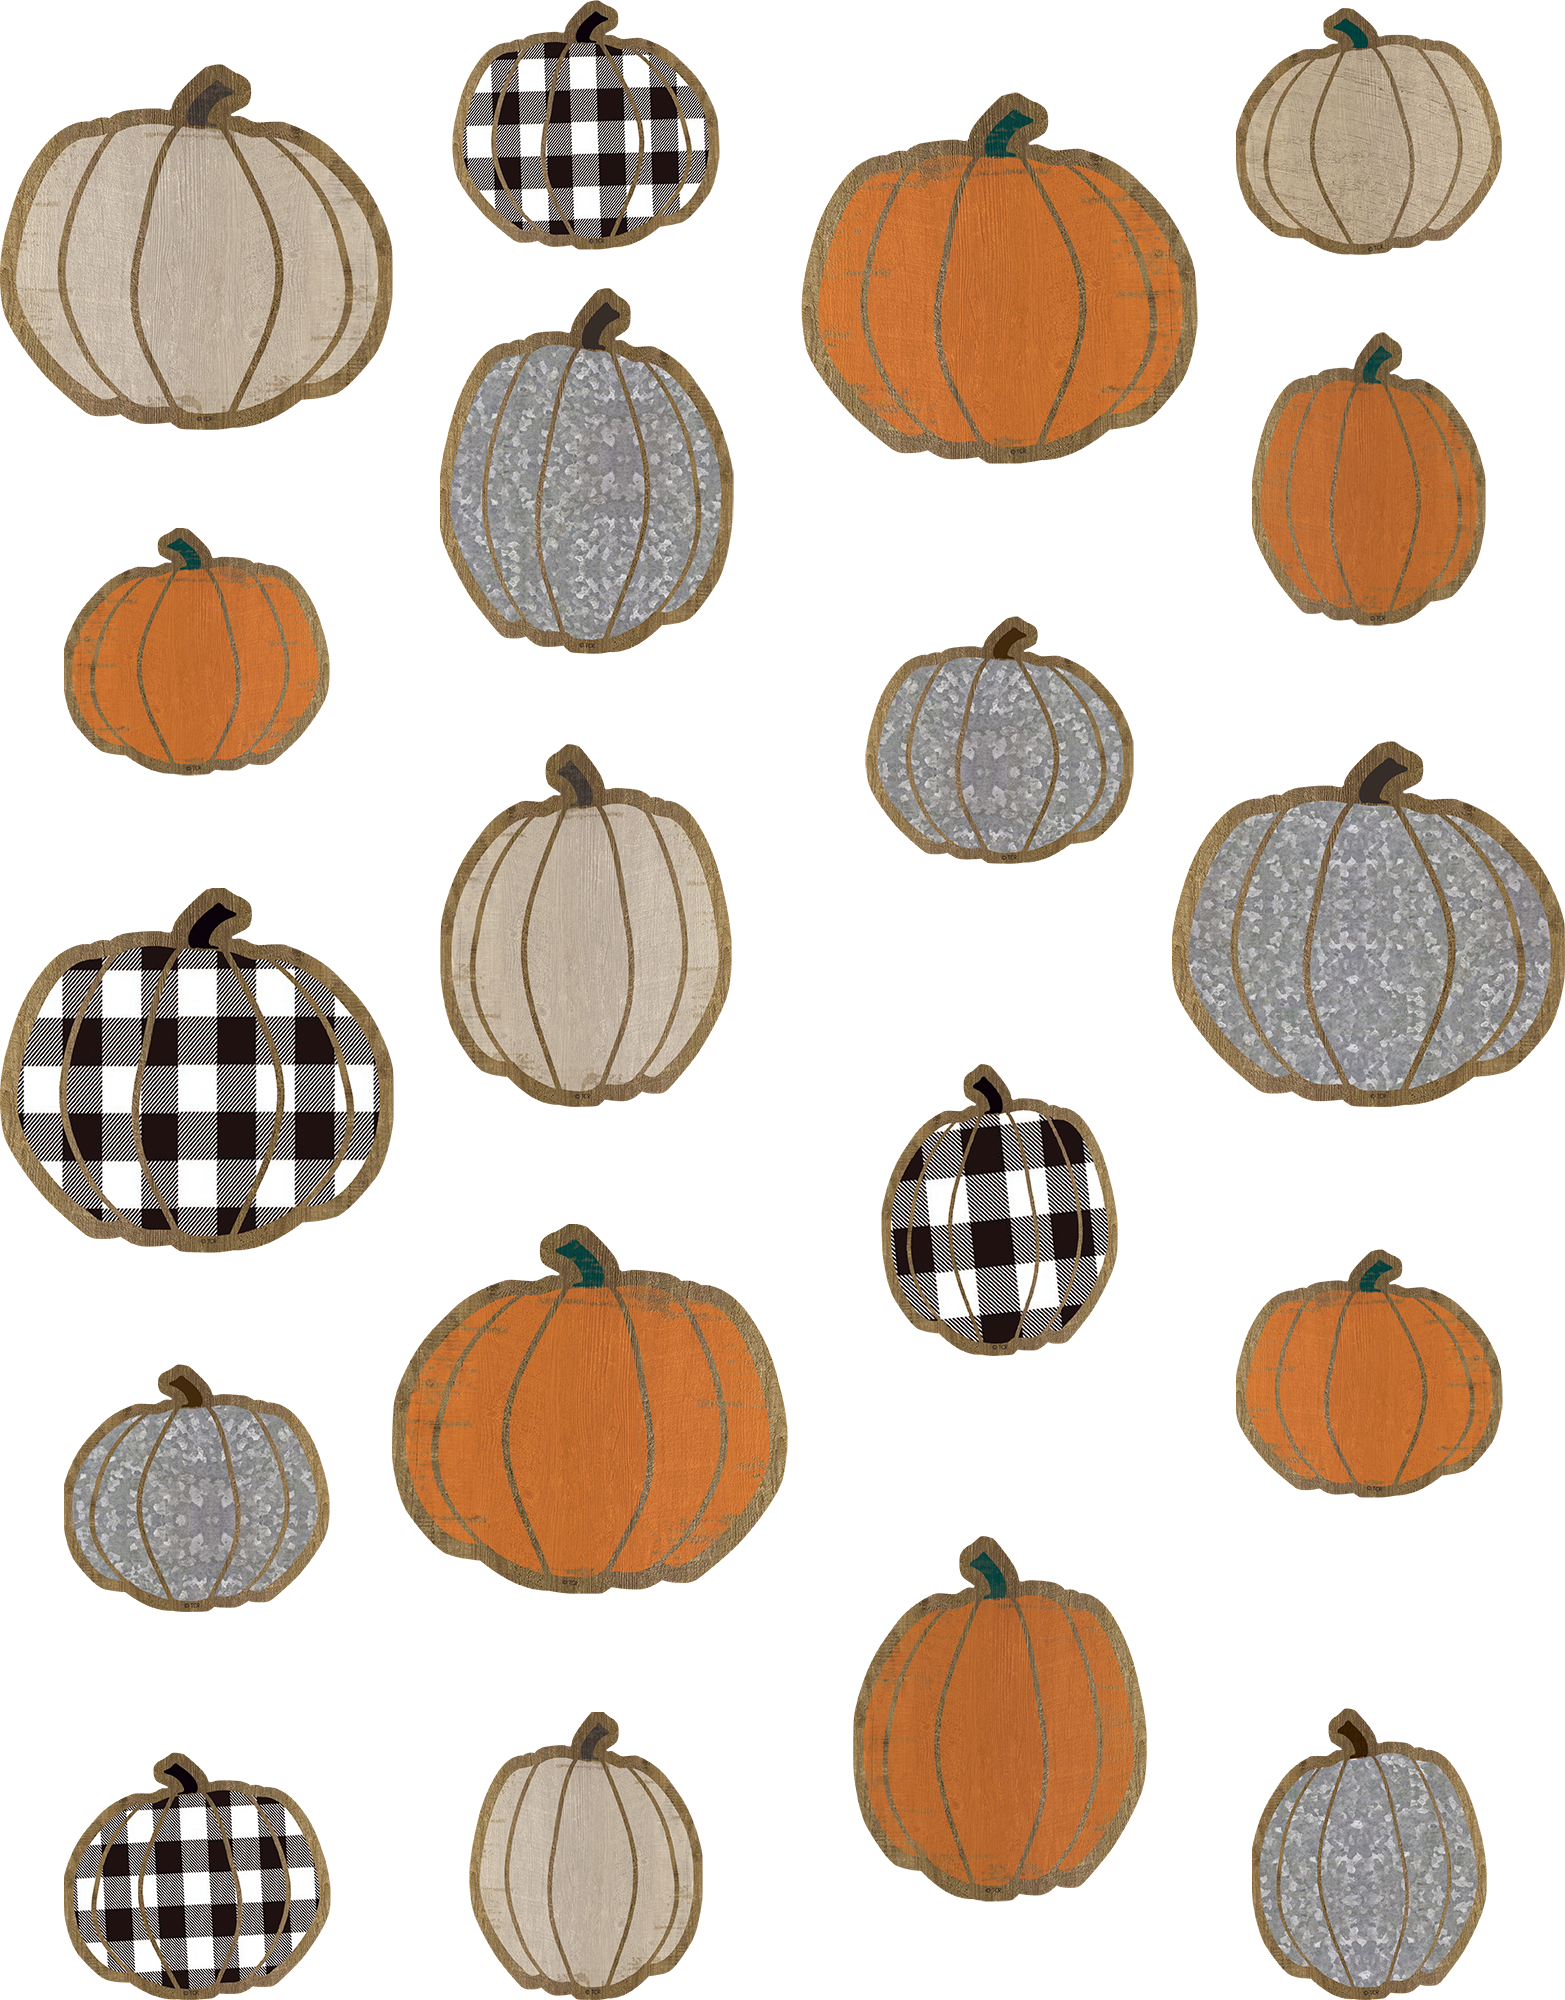 Home Sweet Classroom Pumpkins Accents - Assorted Sizes